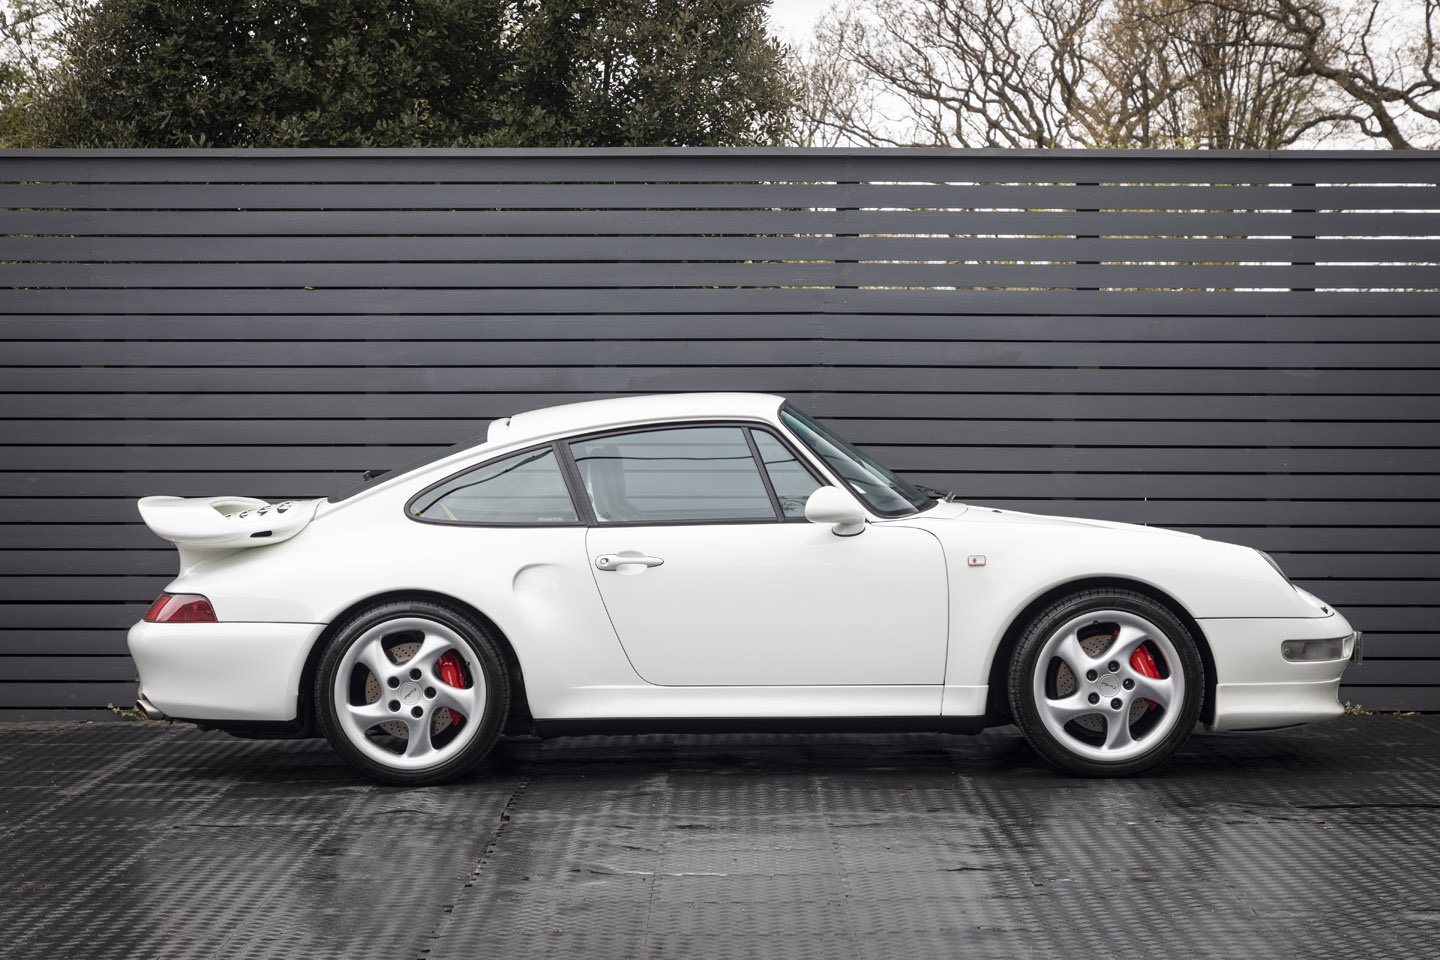 1996 Porsche 993 TURBO FACTORY X50/X79 PACKS !! LHD For Sale (picture 3 of 6)